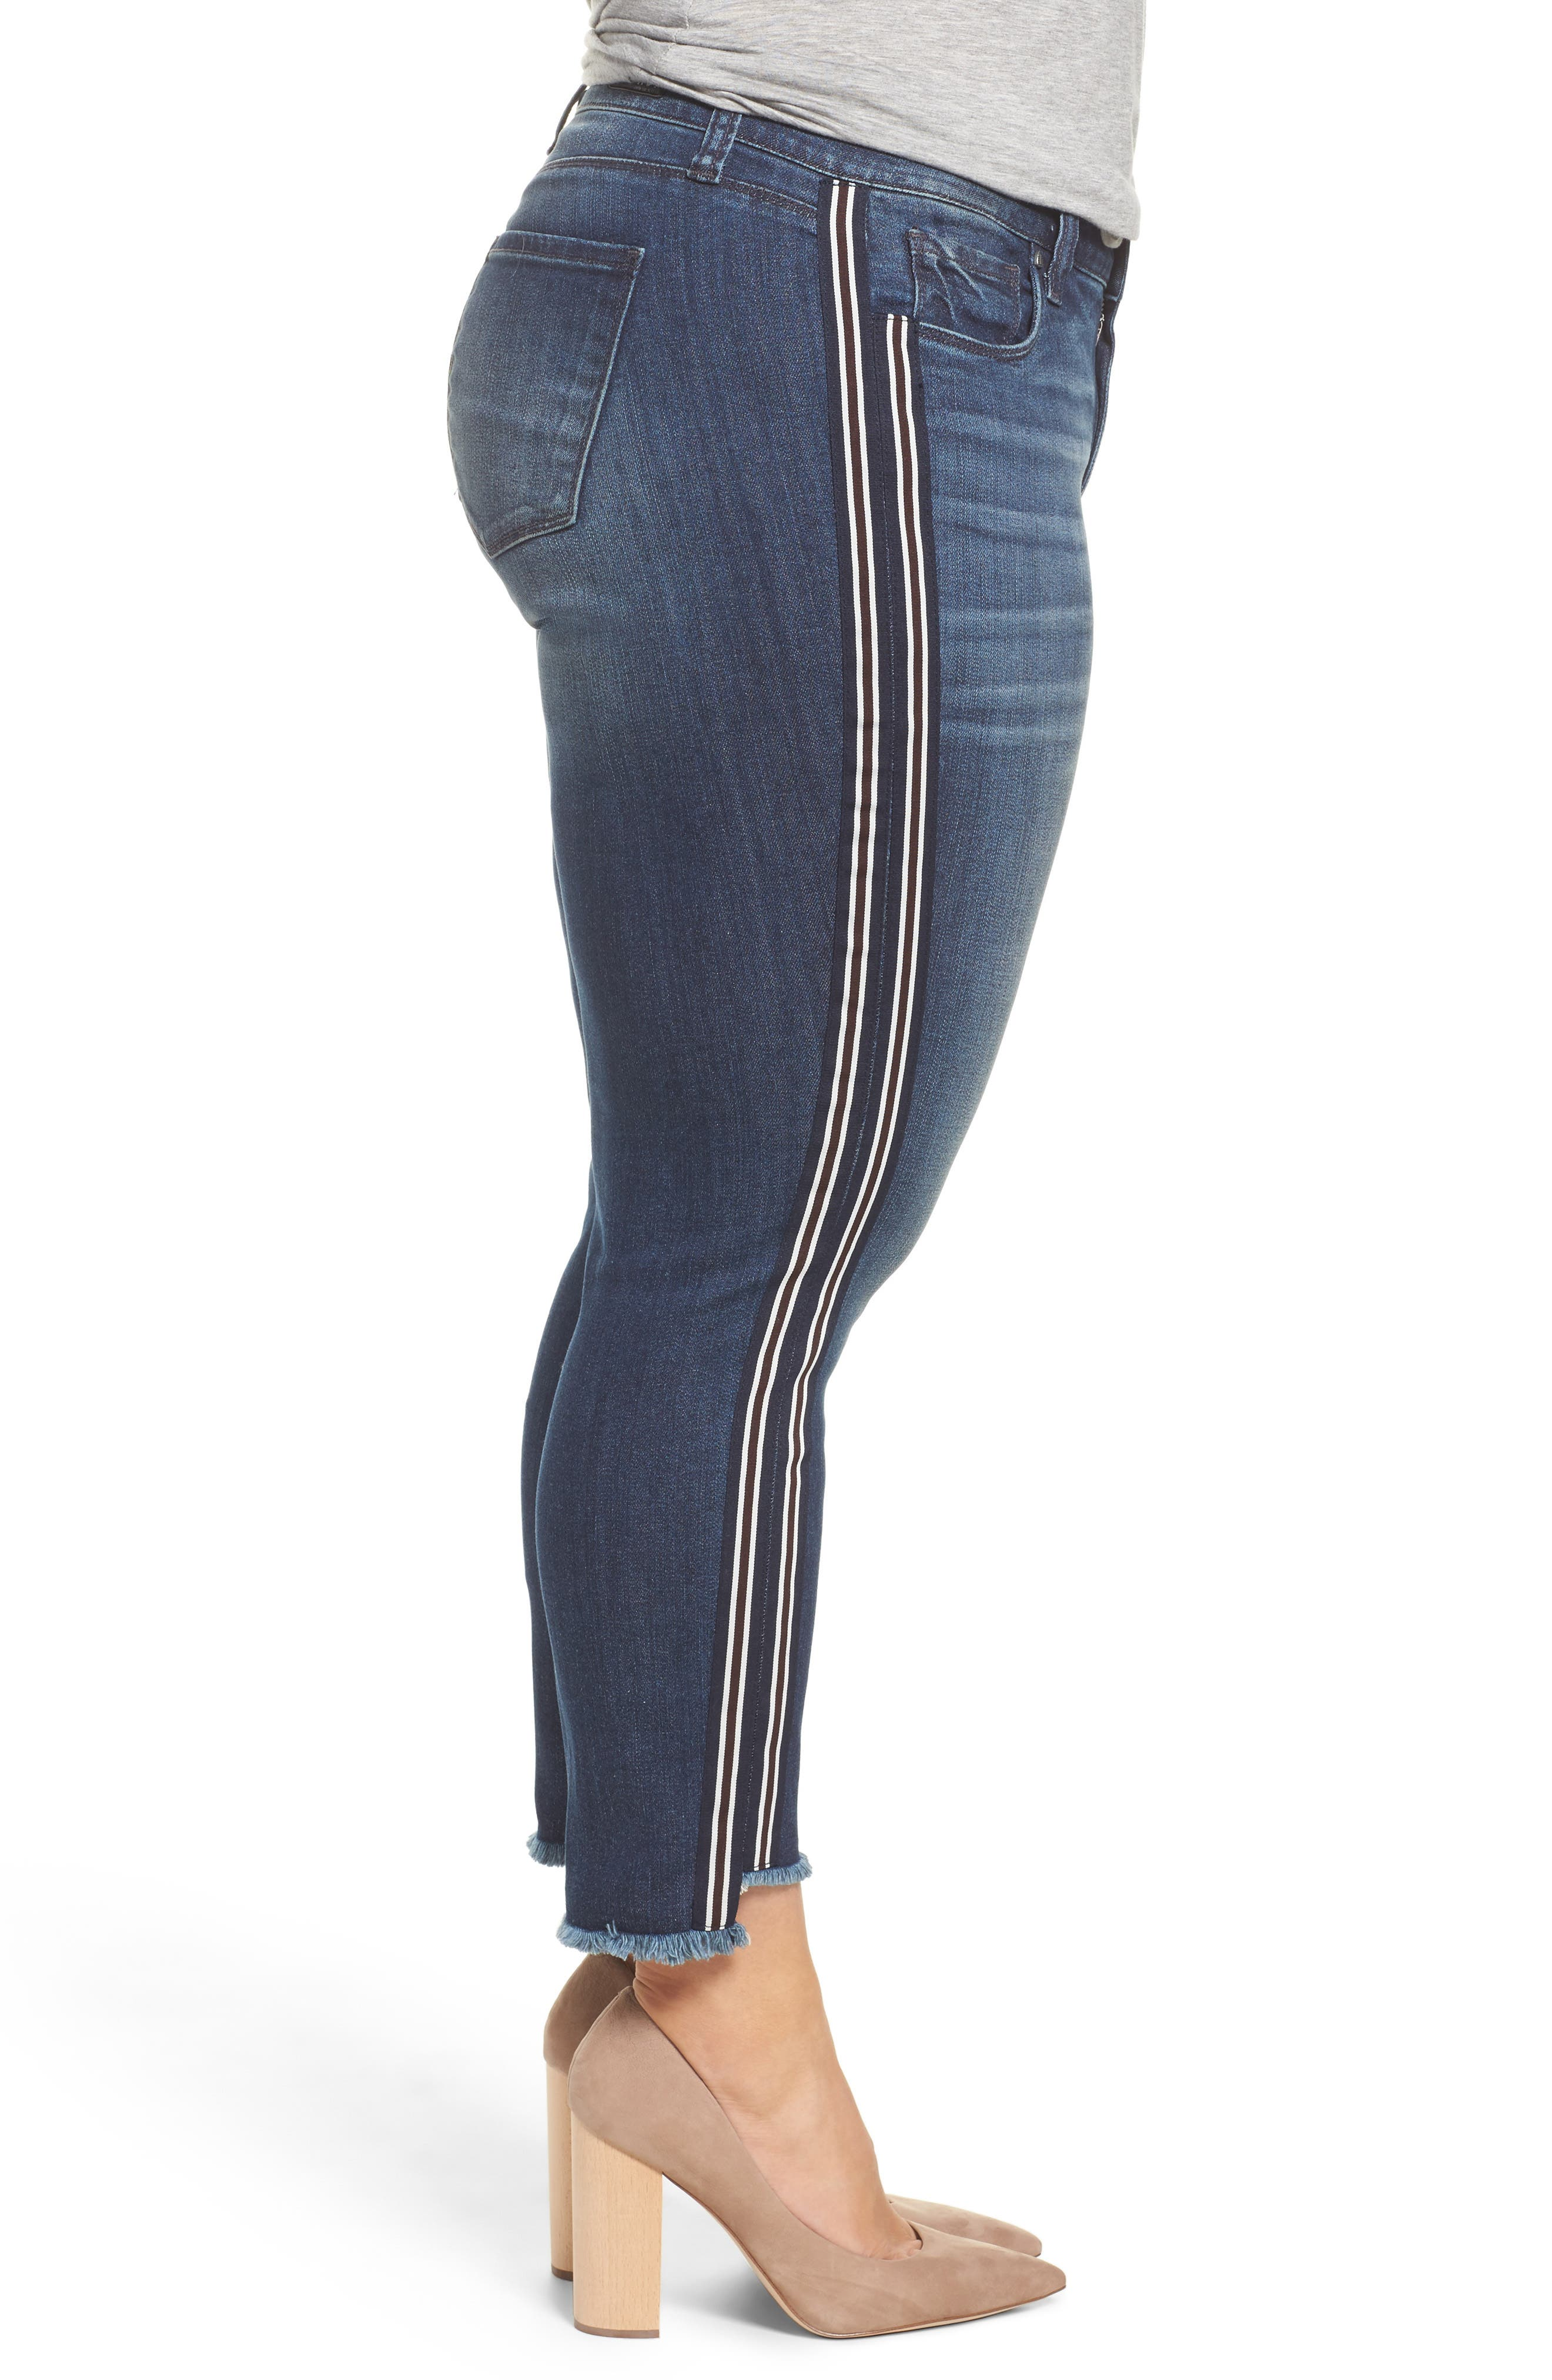 Reese Side Stripe Uneven Ankle Jeans,                             Alternate thumbnail 3, color,                             ANALYZED